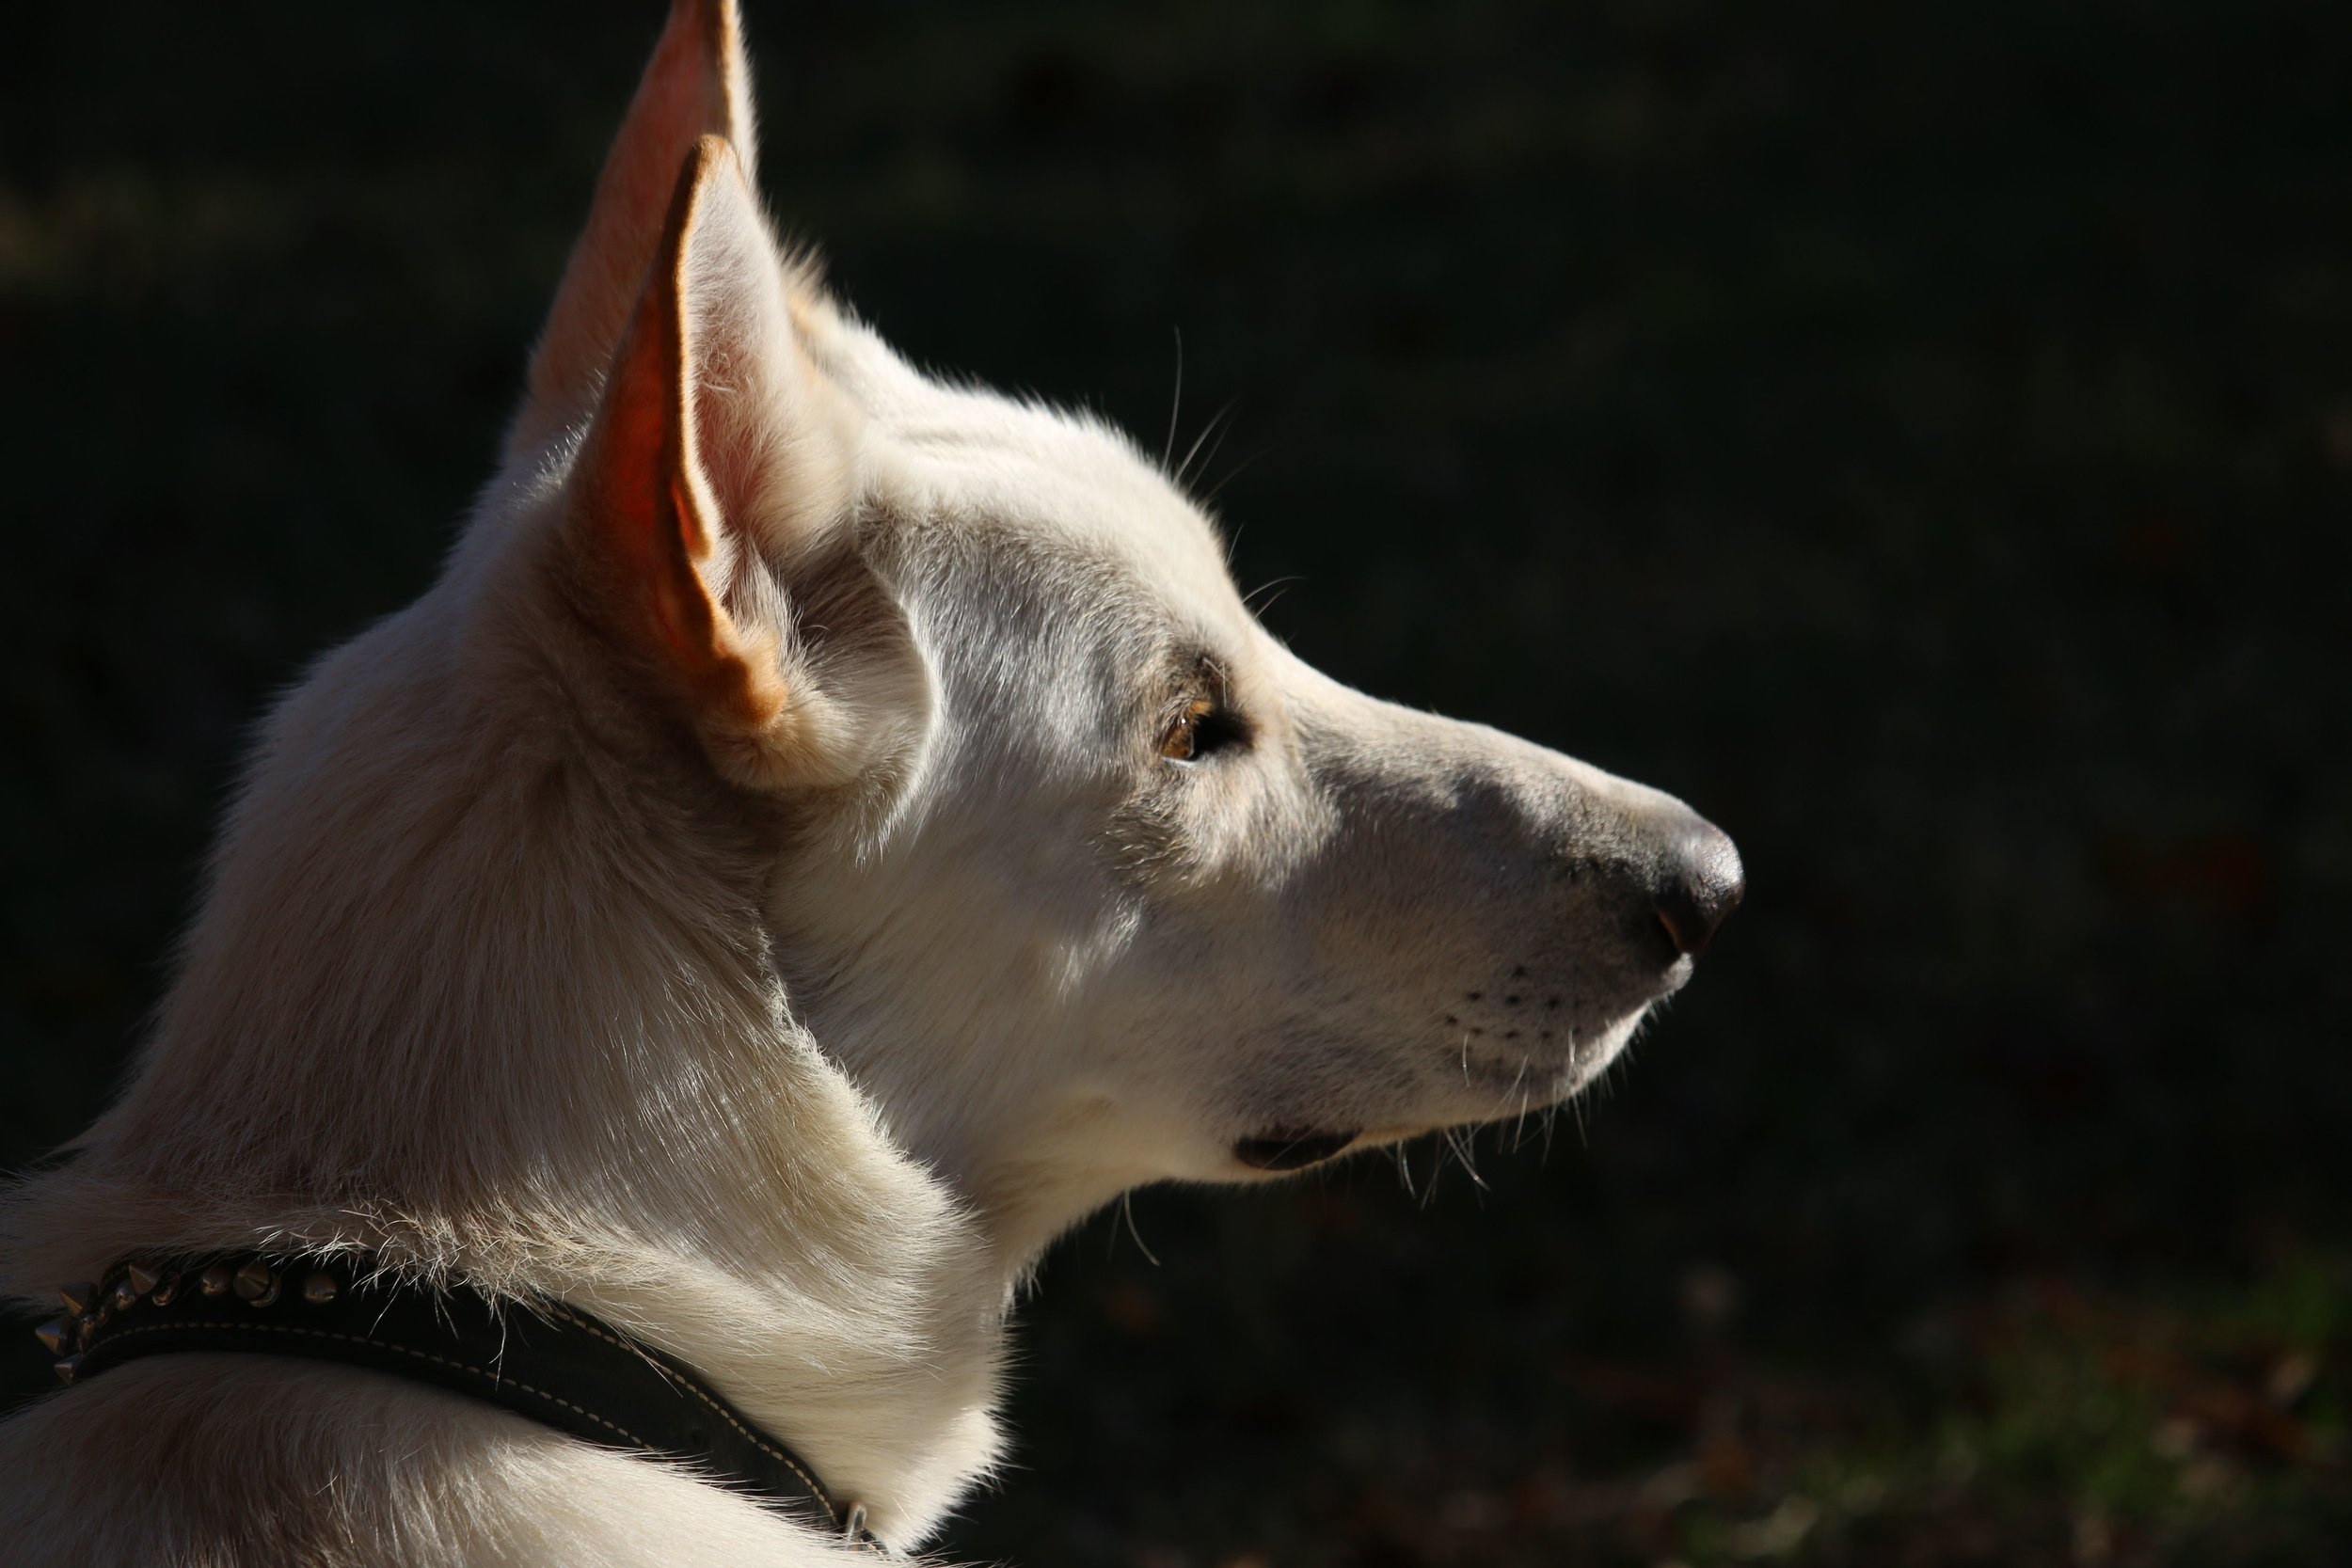 Background History Checked - All Happy Tails Pet Pal, LLC. dog walkers and pet sitters must go through a background history check and review before becoming a member of our pack (for non-dog owners the word team can be substituted for the word pack here).